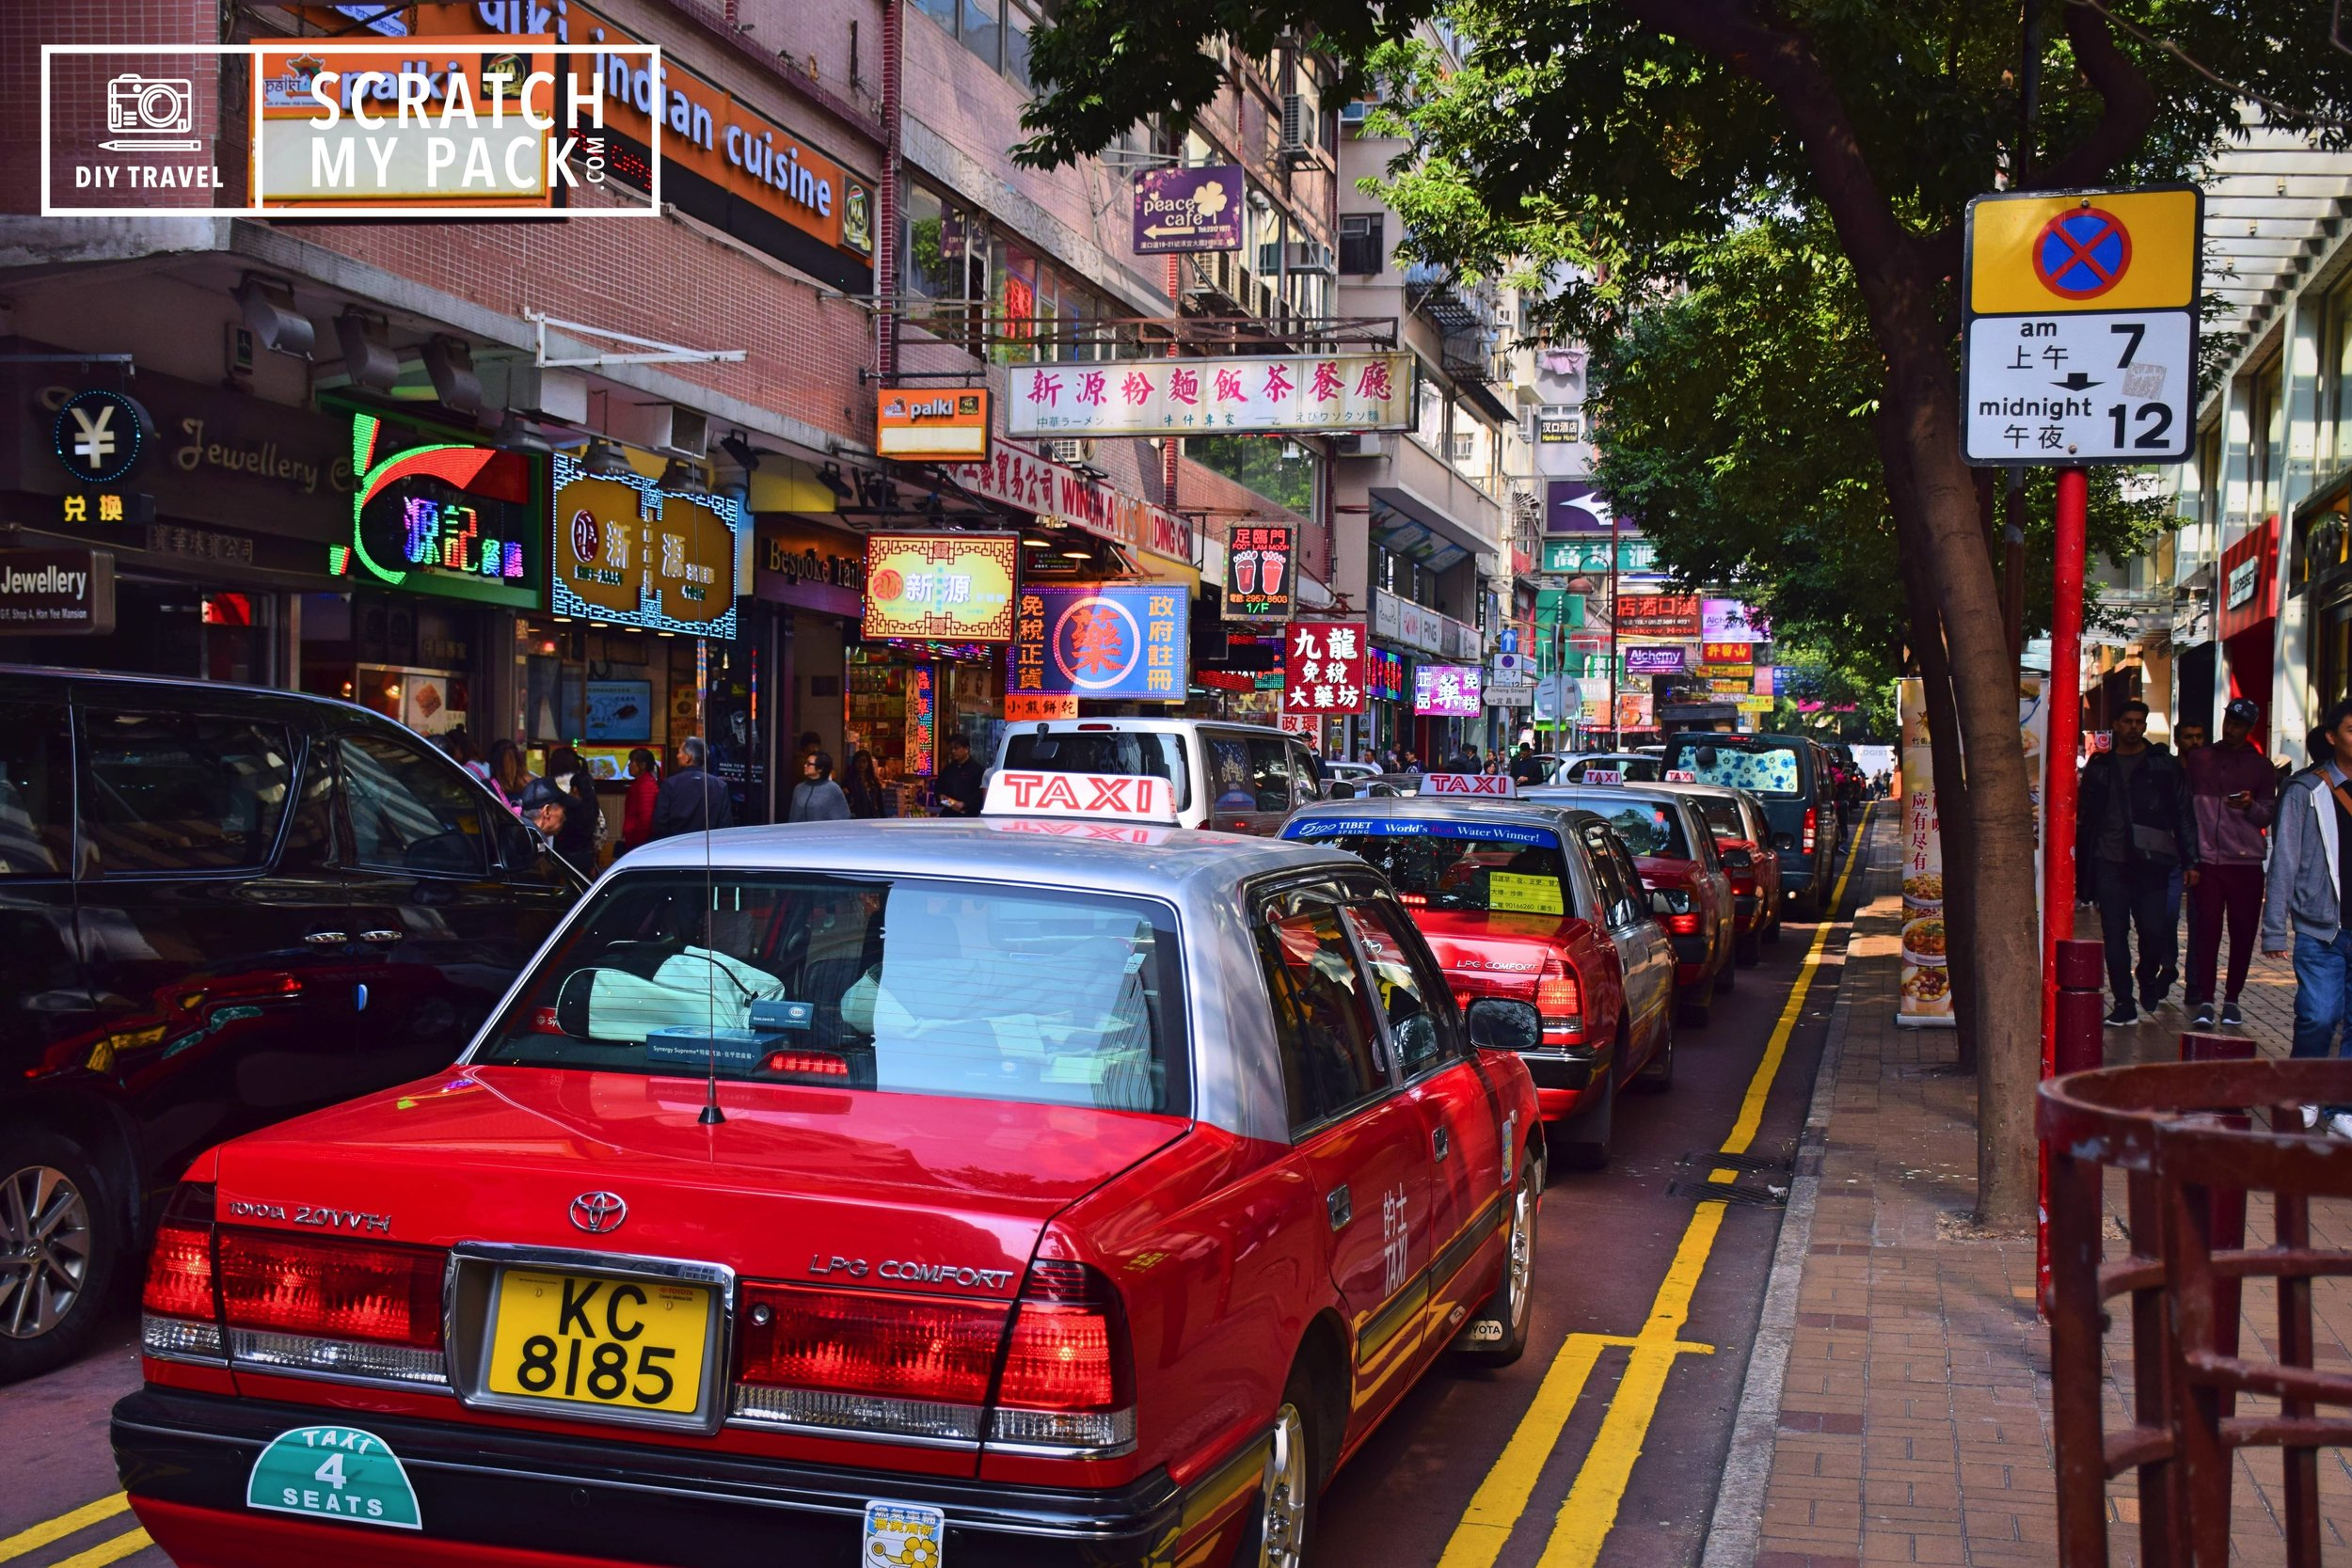 Taxi's  - Fares are charged according to distance traveled and waiting time, measured by a meter on board. There is a starting fare, and there are surcharges for luggage and tolled tunnels and bridges, as well as surcharges for telephone-arranged ordering. There are 3 kinds of taxi's  that operate within Hong Kong. The  Red taxis  have the highest fares among all, and serve all areas of New Territories, Kowloon and Hong Kong Island. The  green taxis , the second most expensive, serve only parts of the New Territories. The  Blue taxis  run in most of Lantau Island. A fare table must be displayed clearly inside the taxi, by law.